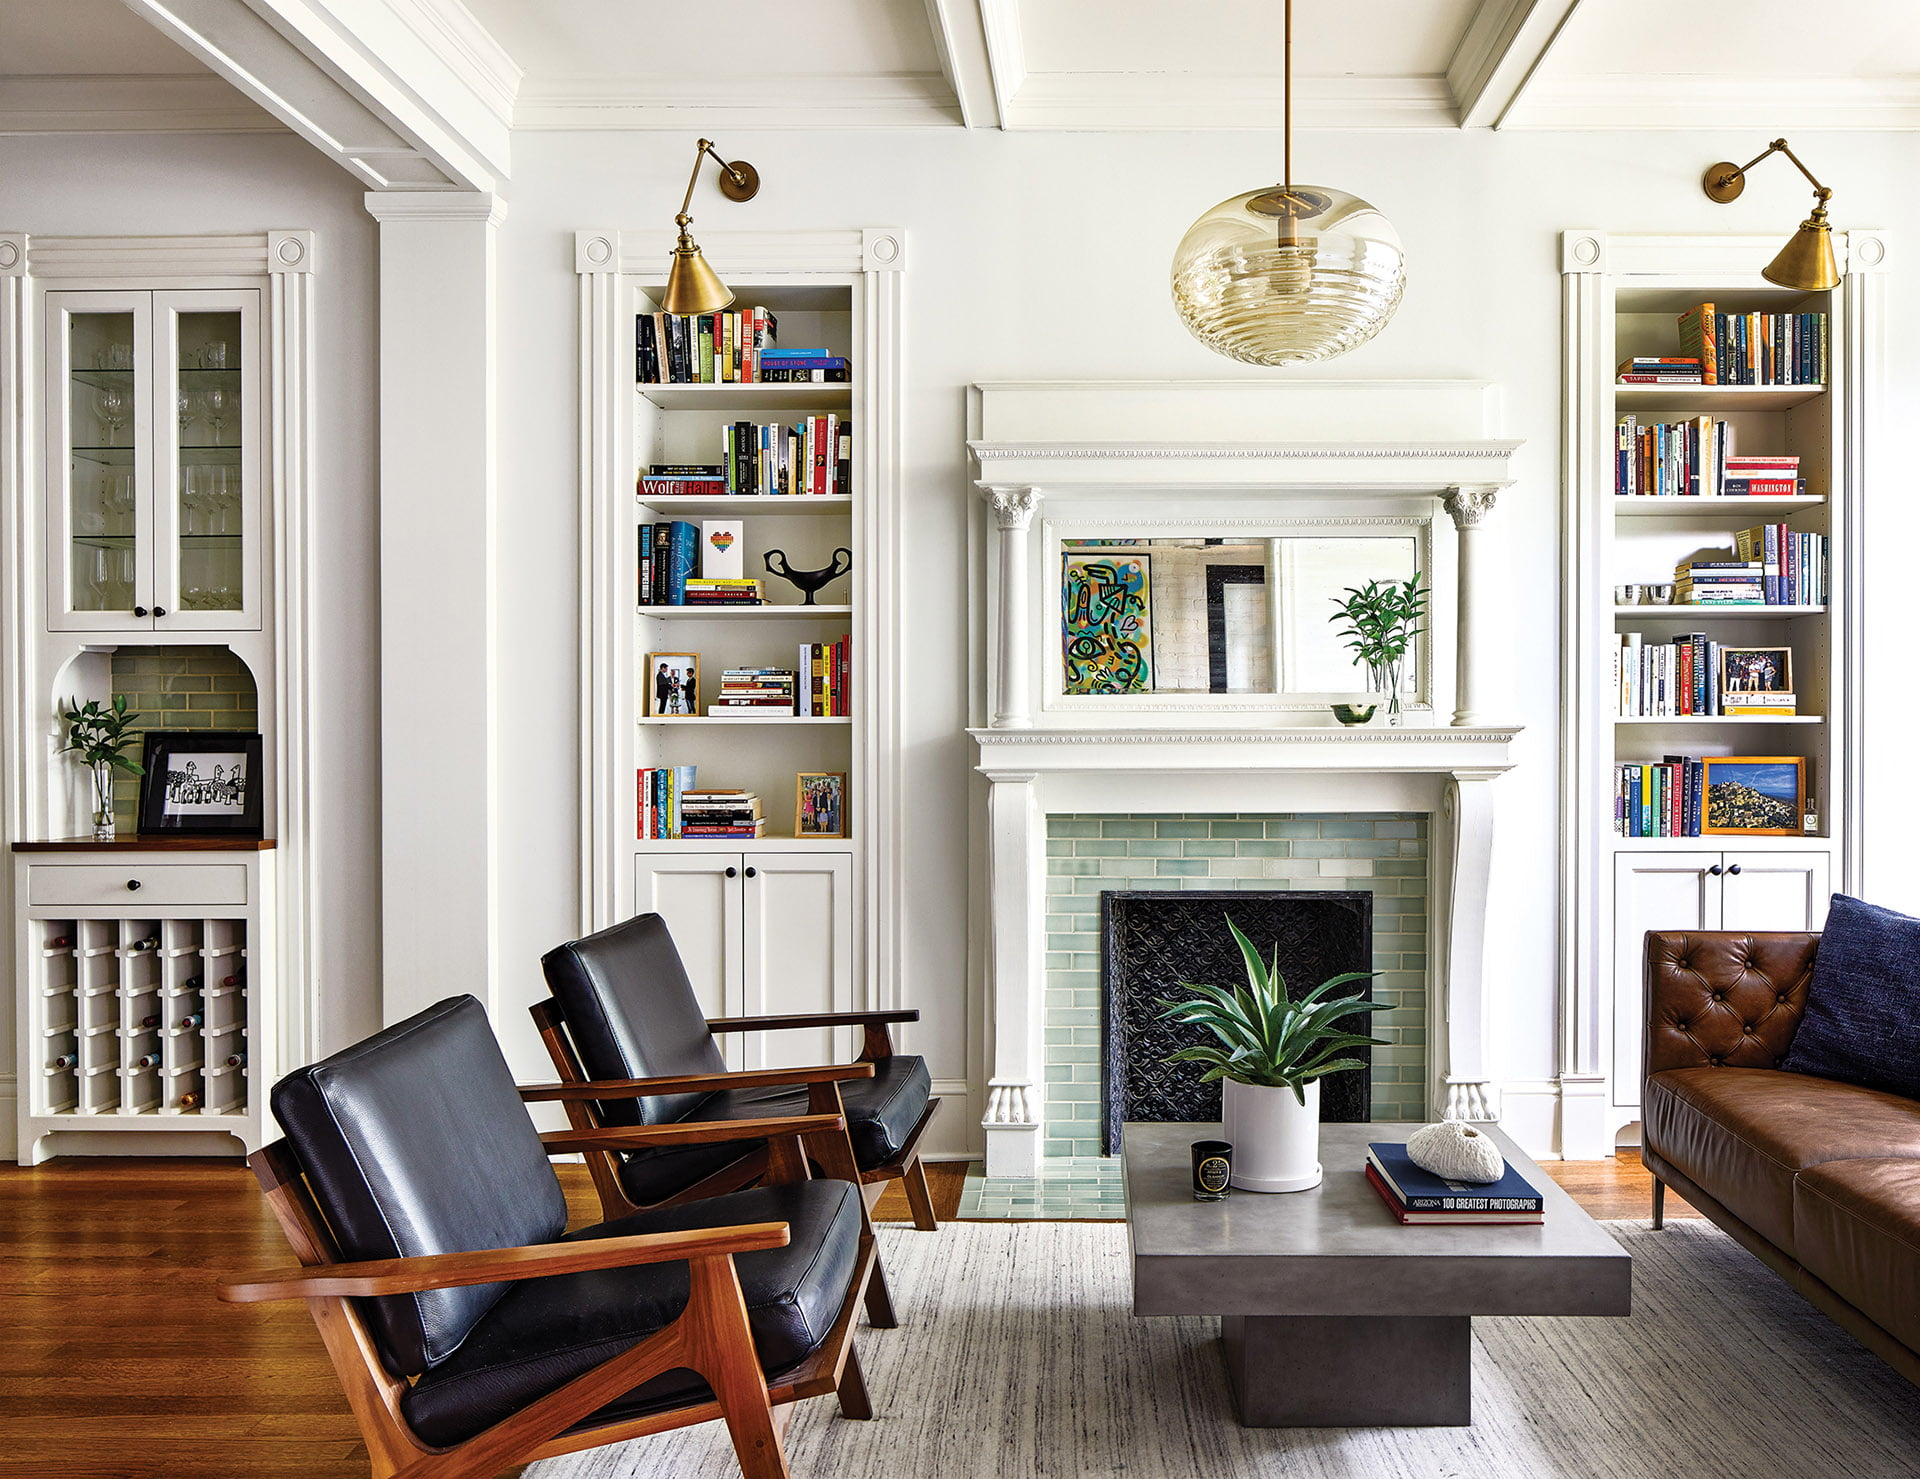 Built-in bookcases, pilasters, an elaborate mantel and tile surround in a the living room